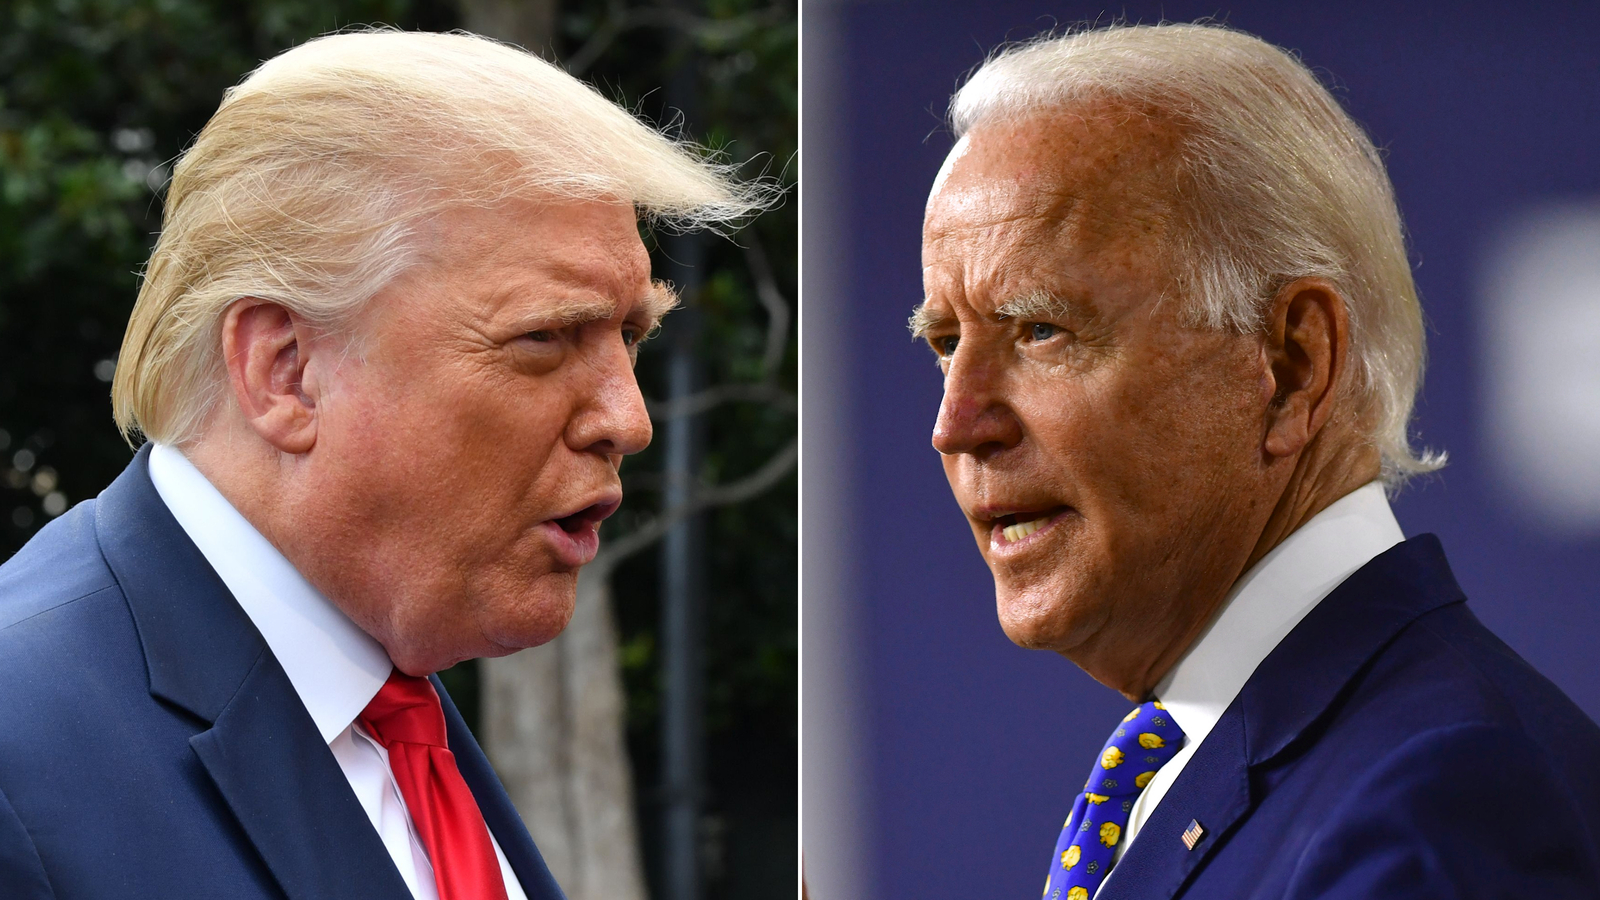 Joe Biden's lead over Donald Trump among registered voters has significantly narrowed since June, according to a CNN poll conducted by SSRS in August 2020. (Getty Images)